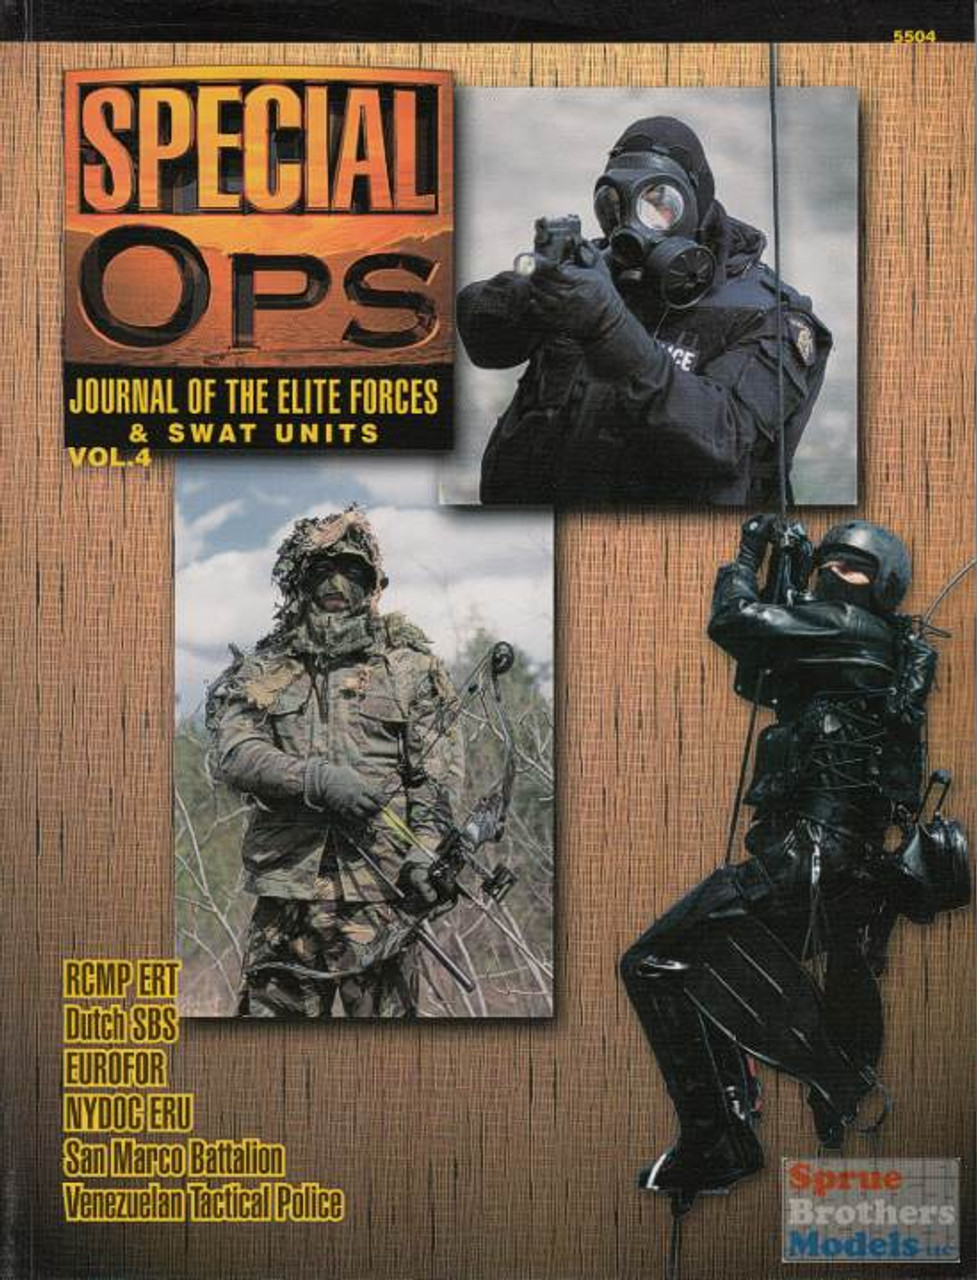 CCD5504 Concord Publications - Special Ops Volume #4